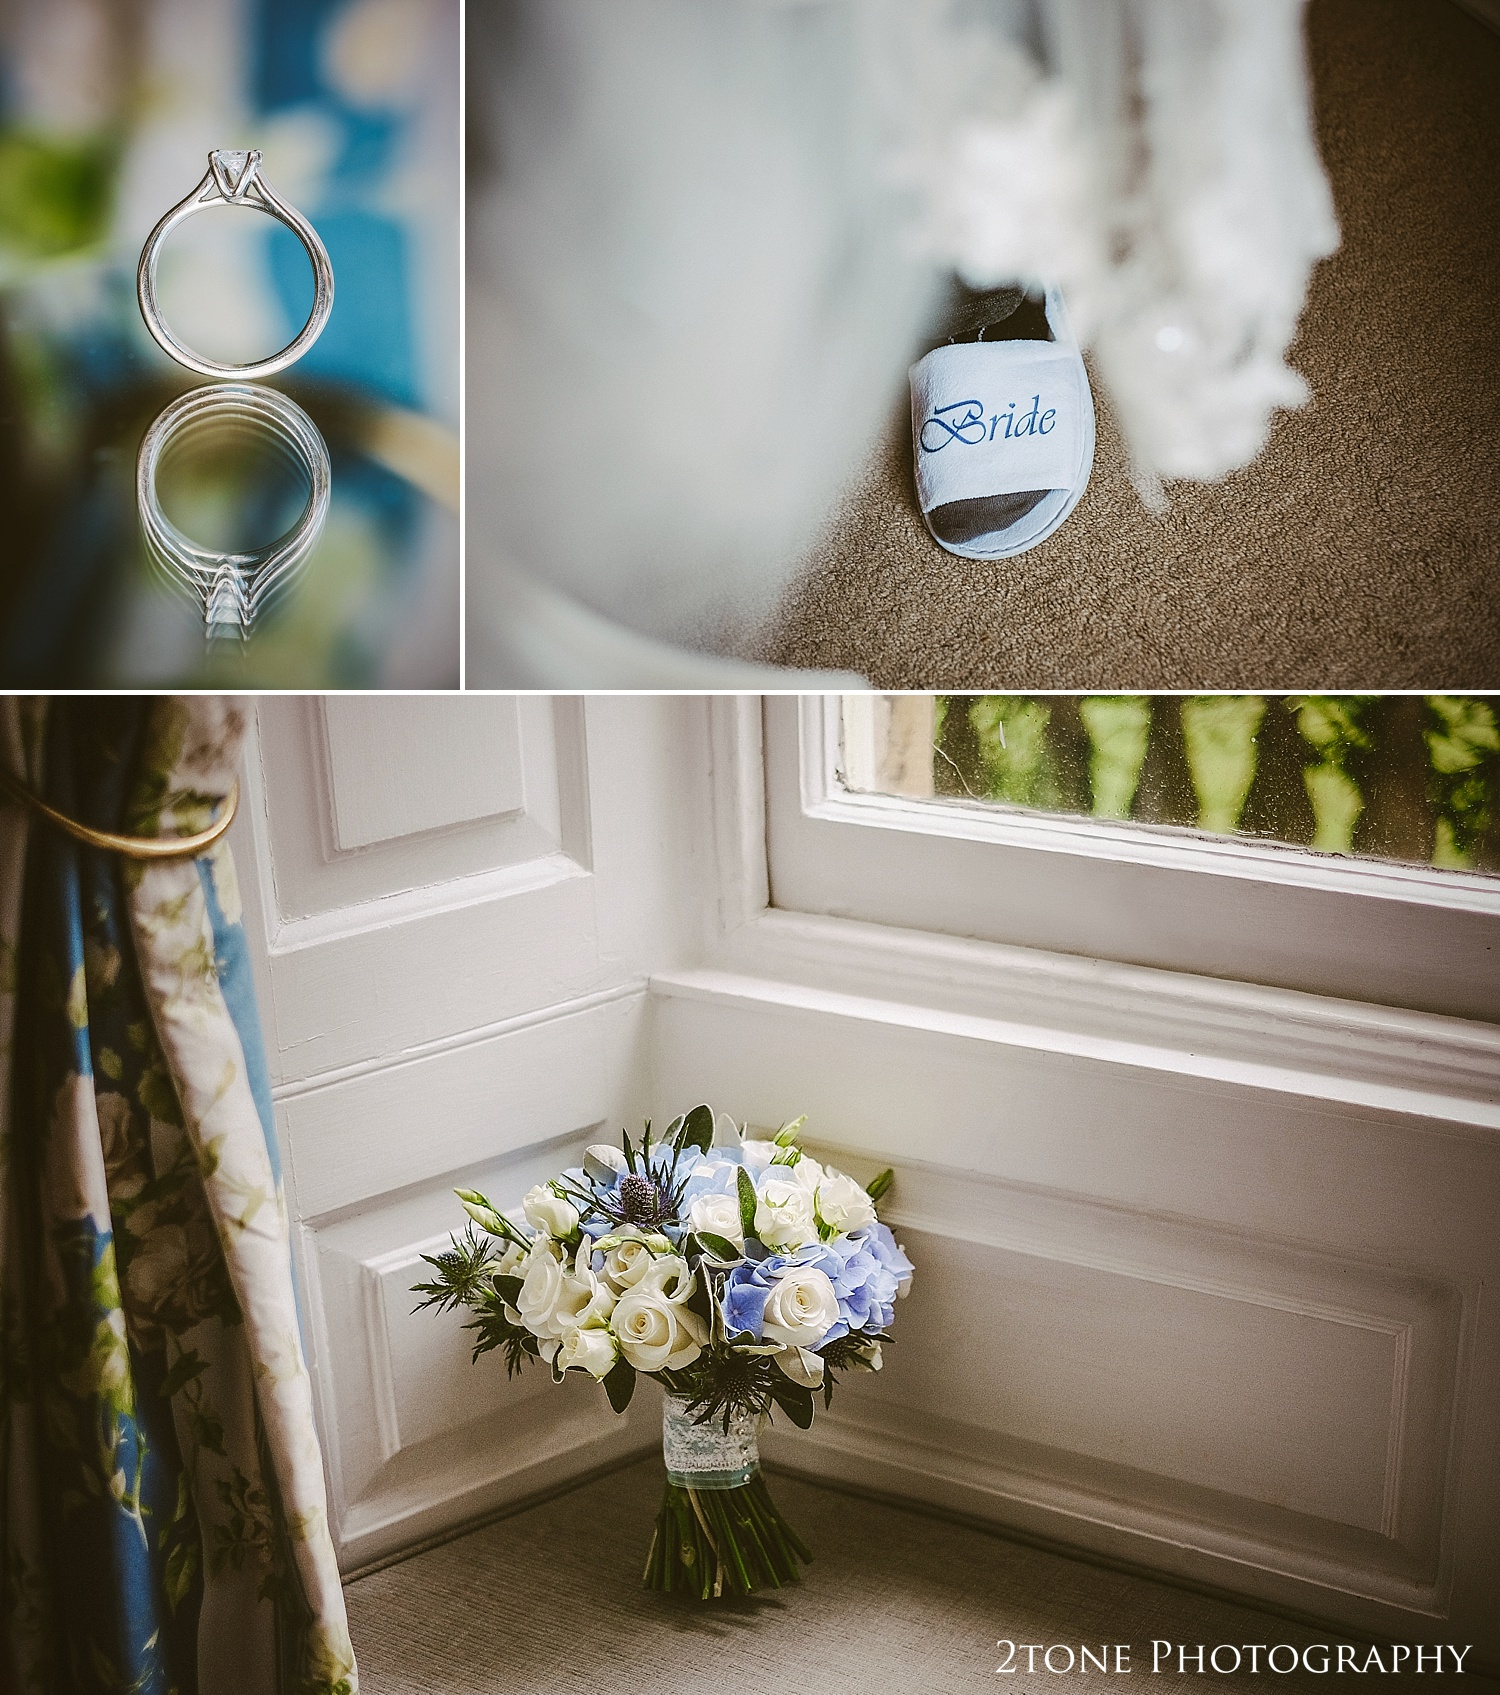 I took my time to carefully photograph Samantha's beautiful wedding details, her beautiful engagement ring, her stunning bouquet of roses and hydrangeas and her lace detailed shoes and veil.